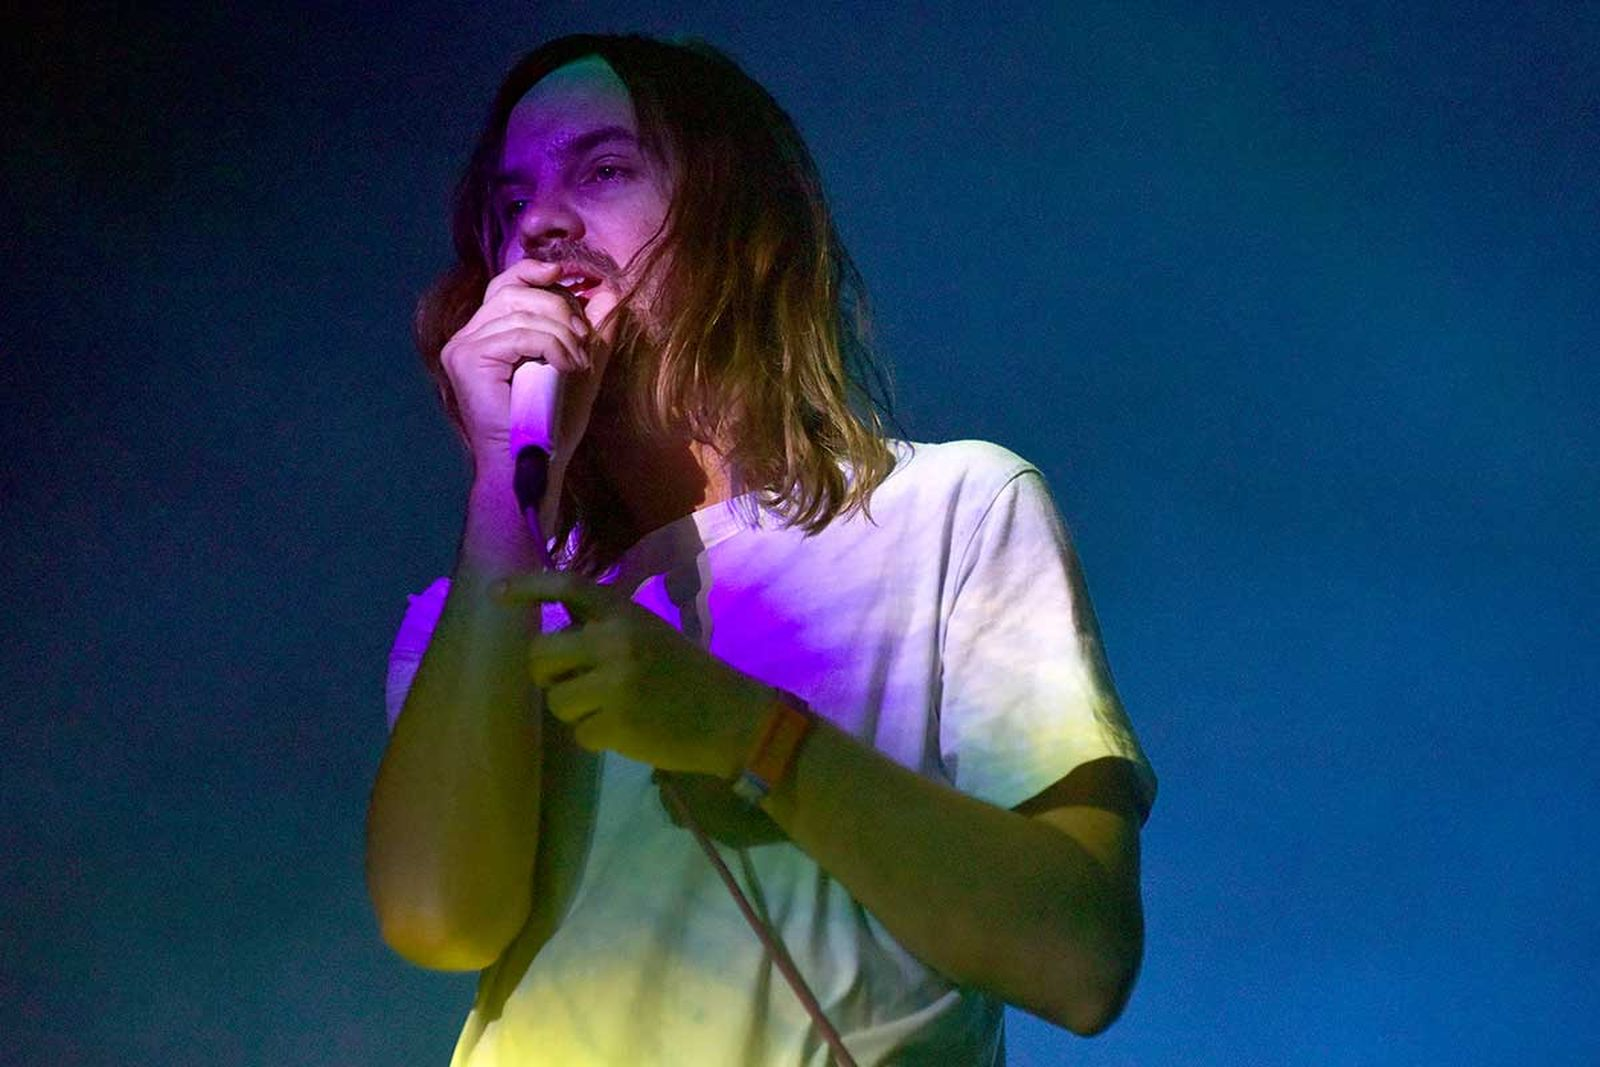 Kevin Parker of Tame Impala performs during the ACL Music Festival 2019